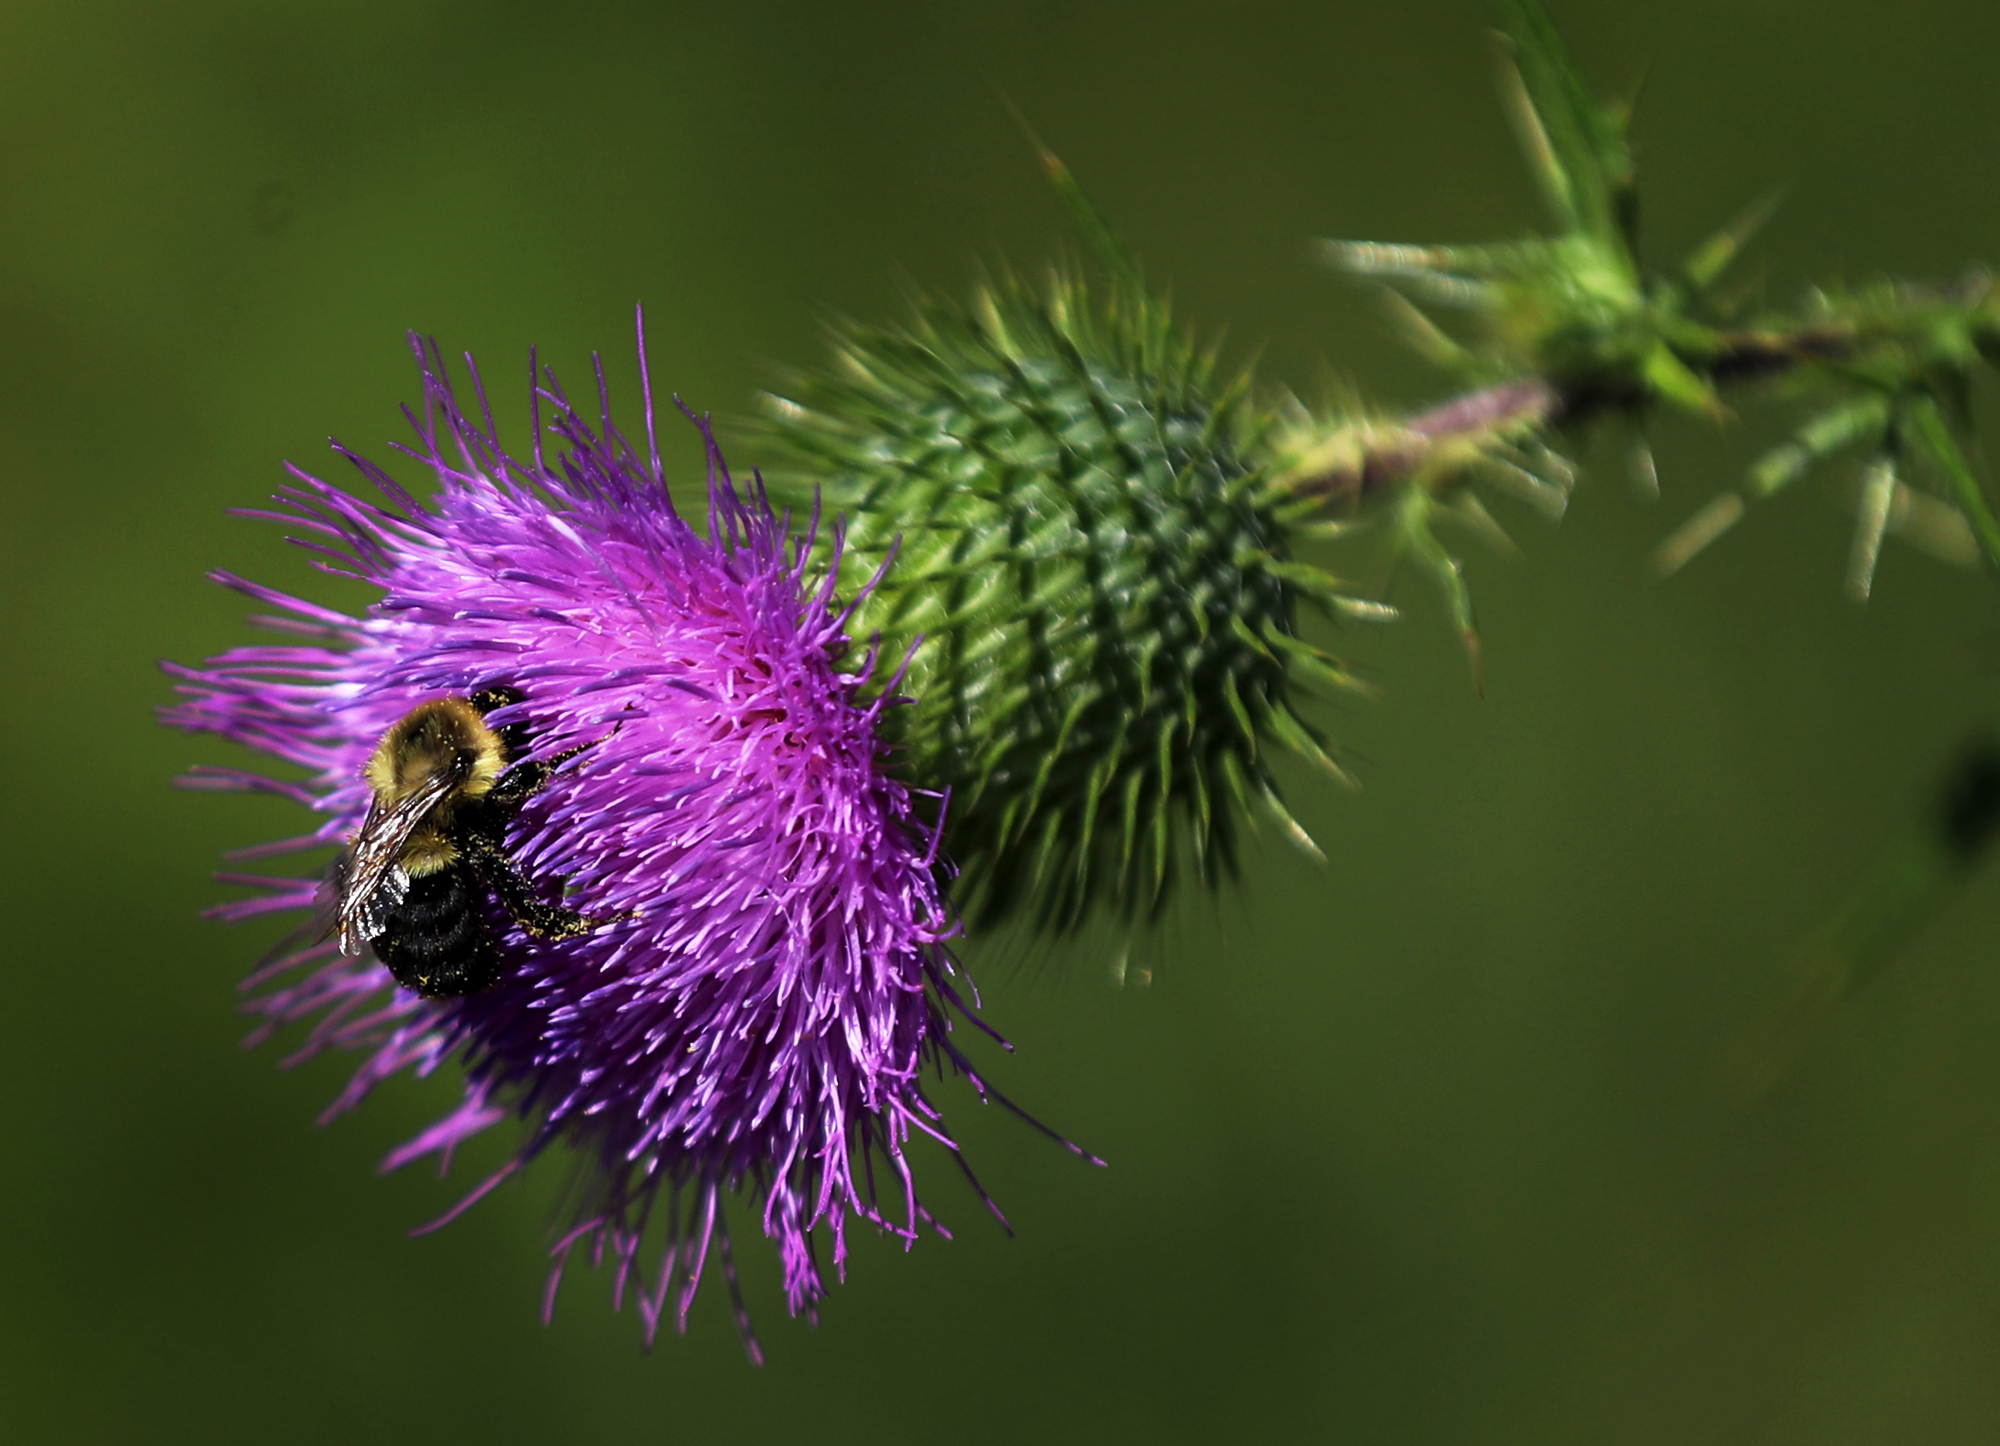 A bumble bee on a thistle flower in a meadow at the family's 10-acre residence in Scandia.